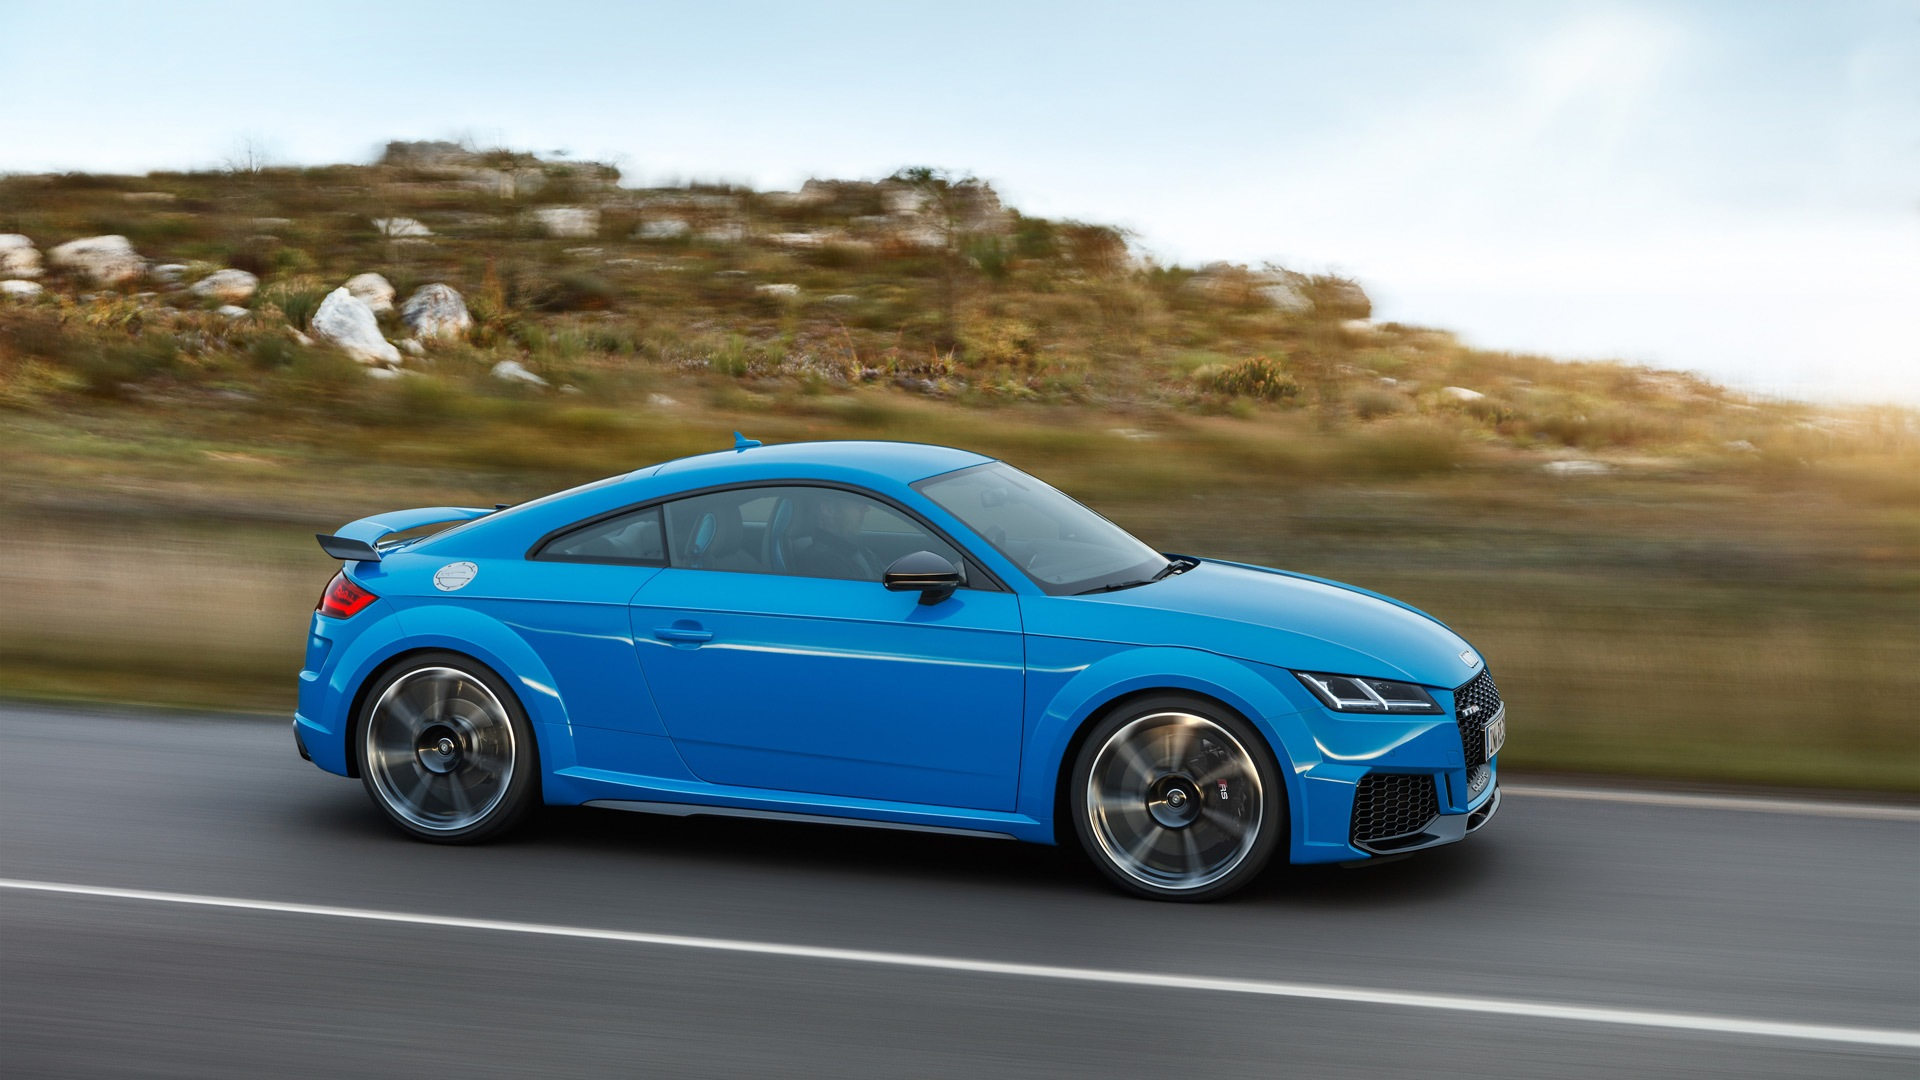 62 The Best 2020 Audi Tt Rs Prices